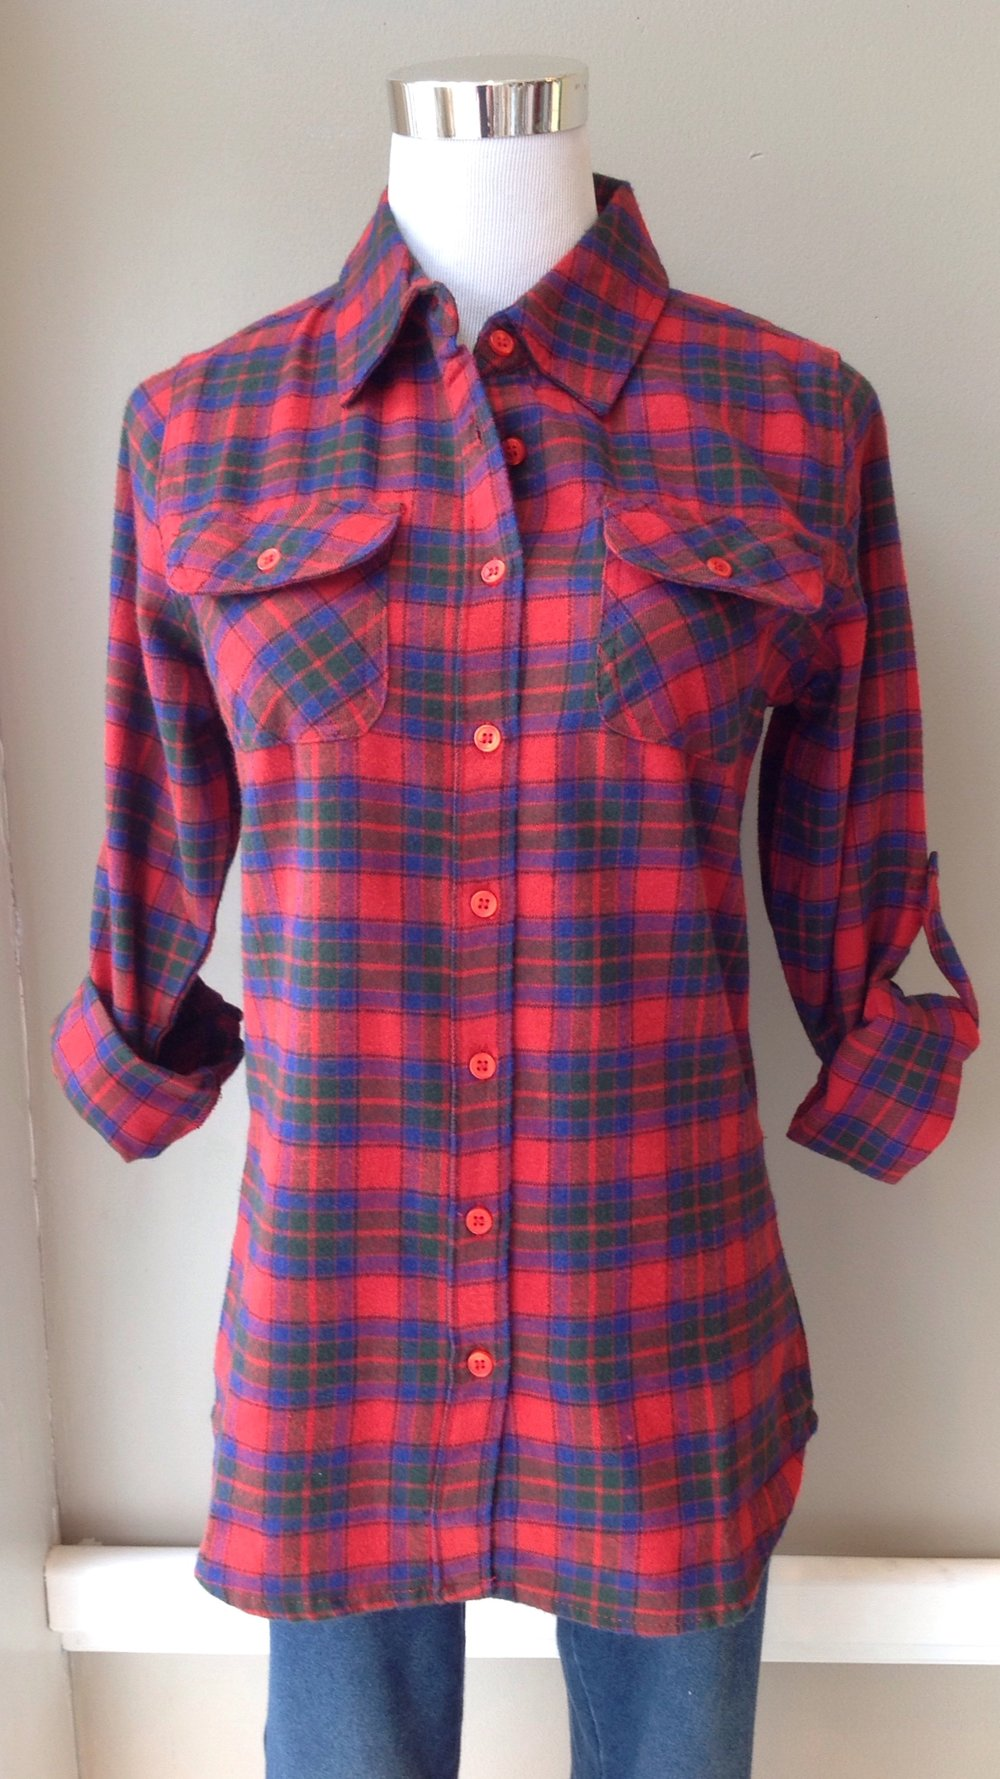 Cotton flannel button-down top with roll tab sleeves in red/royal plaid, $34